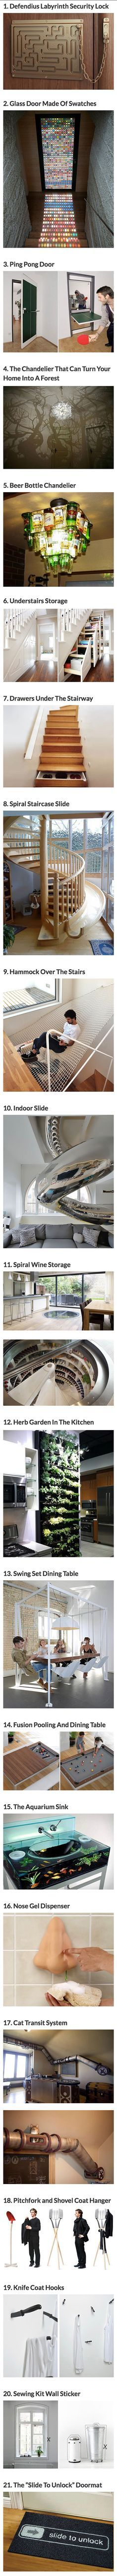 Ideas to make home even more fun and beautiful Ideen, um Zuhause noch schöner…